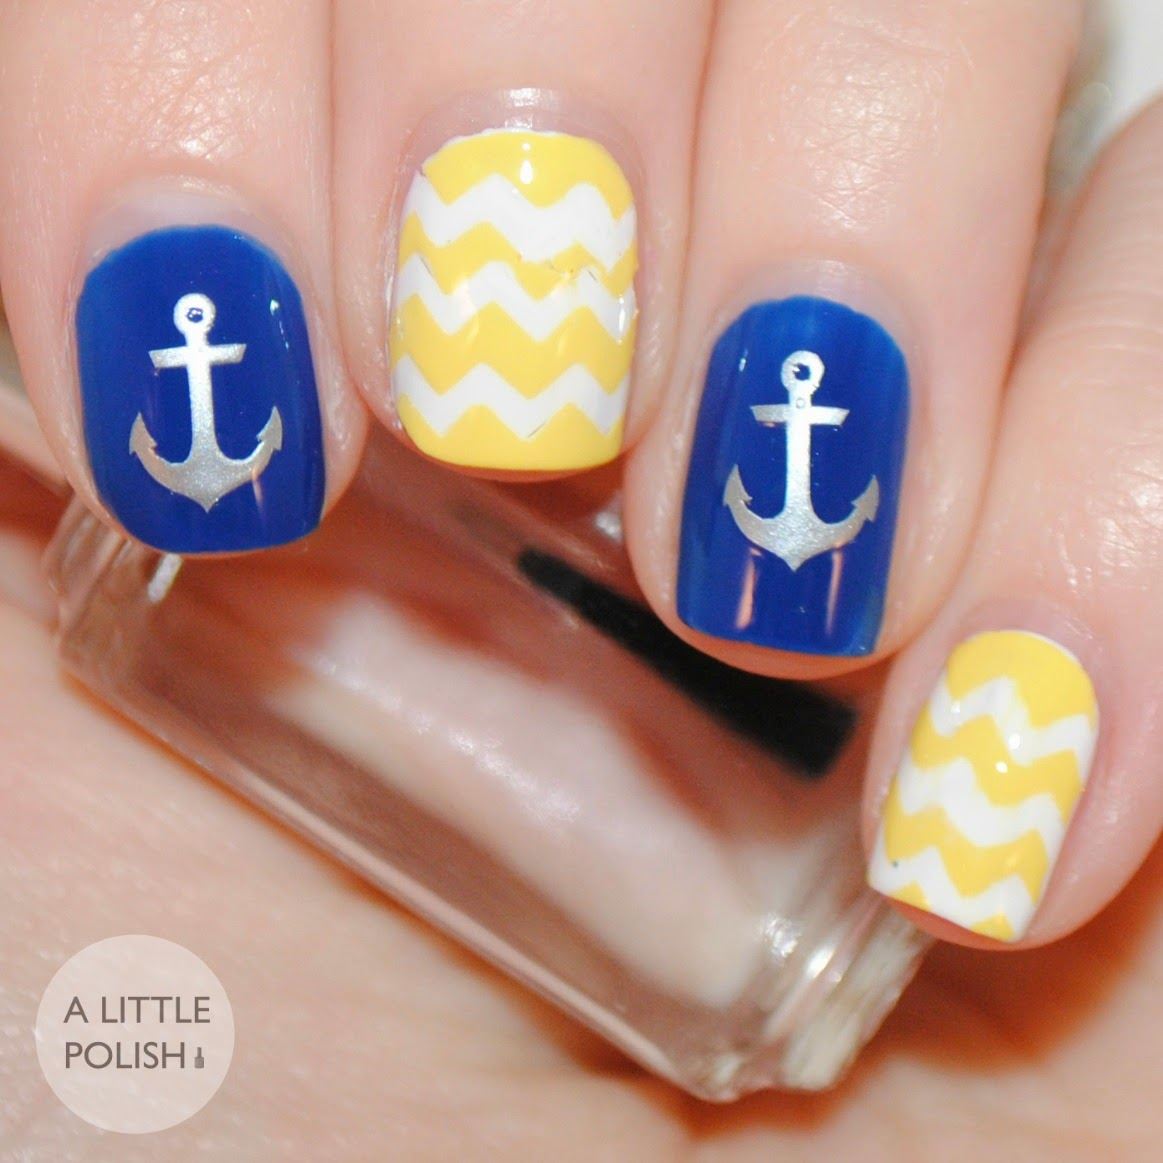 A Little Polish: Vinyl Nail Decals from Lacquer by Lissa